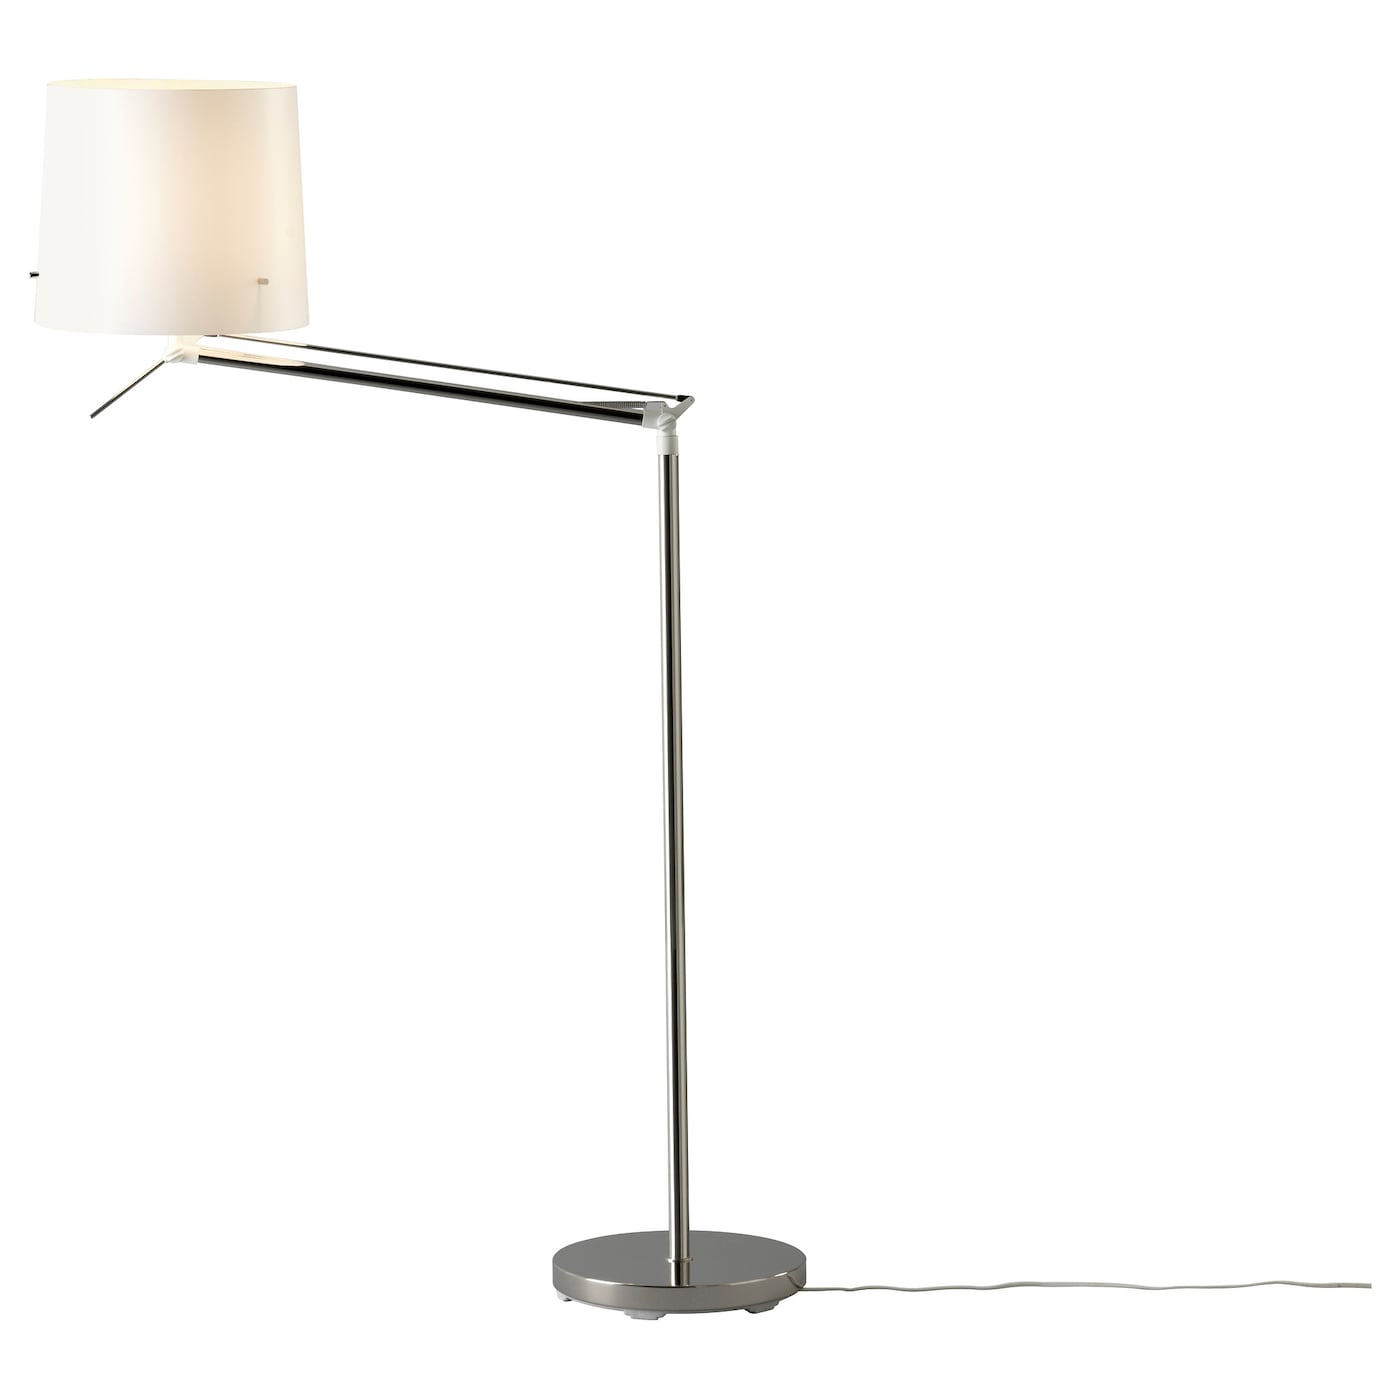 samtid lampadaire liseuse nickel blanc ikea. Black Bedroom Furniture Sets. Home Design Ideas